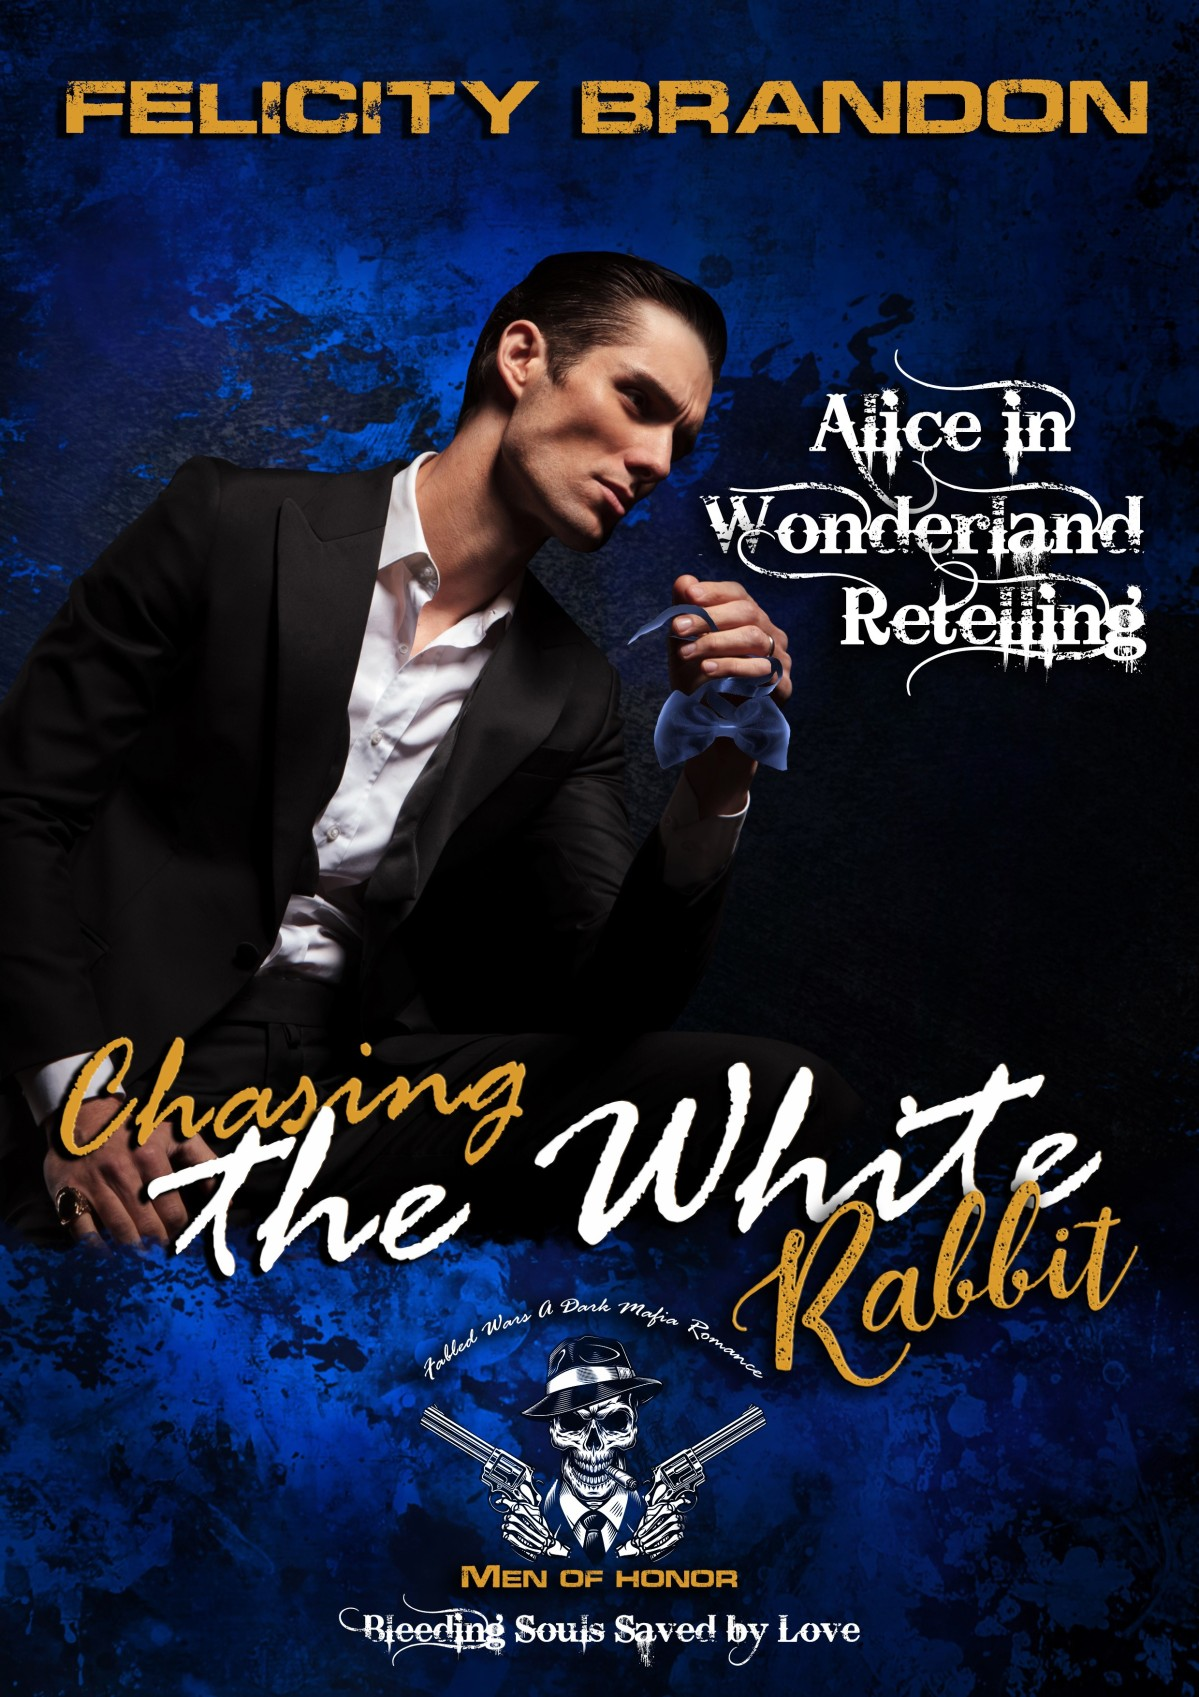 Chasing the White Rabbit #coverreveal!